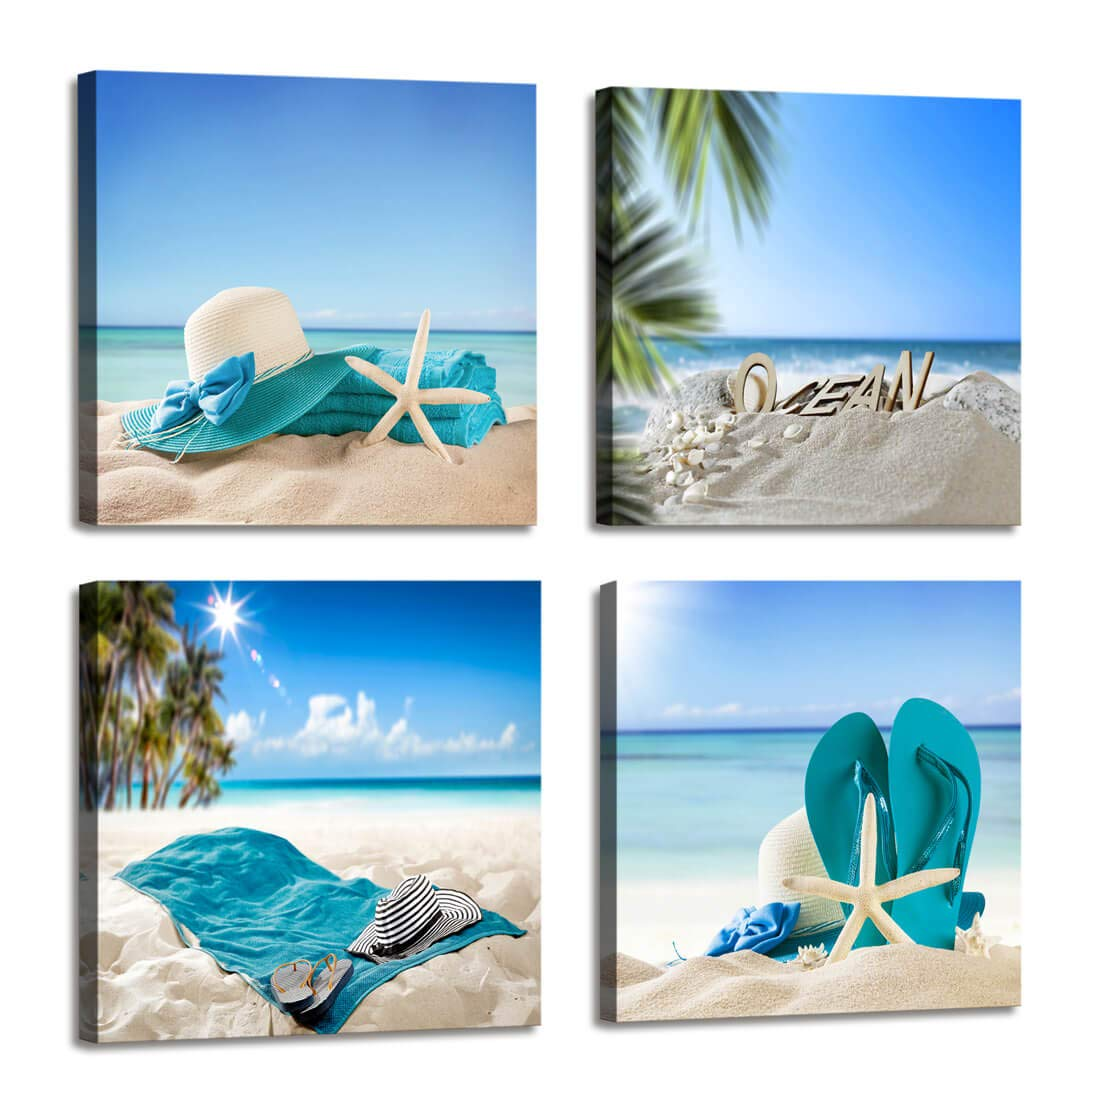 Beach Theme Decor Bedroom Wall Decor Summer Beach Palms Sandy Beach with Shells Ocean Decor - 4 Panels Framed Artwork Blue Sea Canvas Prints for Living Room Bathroom Home Decor 12x12 inches 4pcs/Set